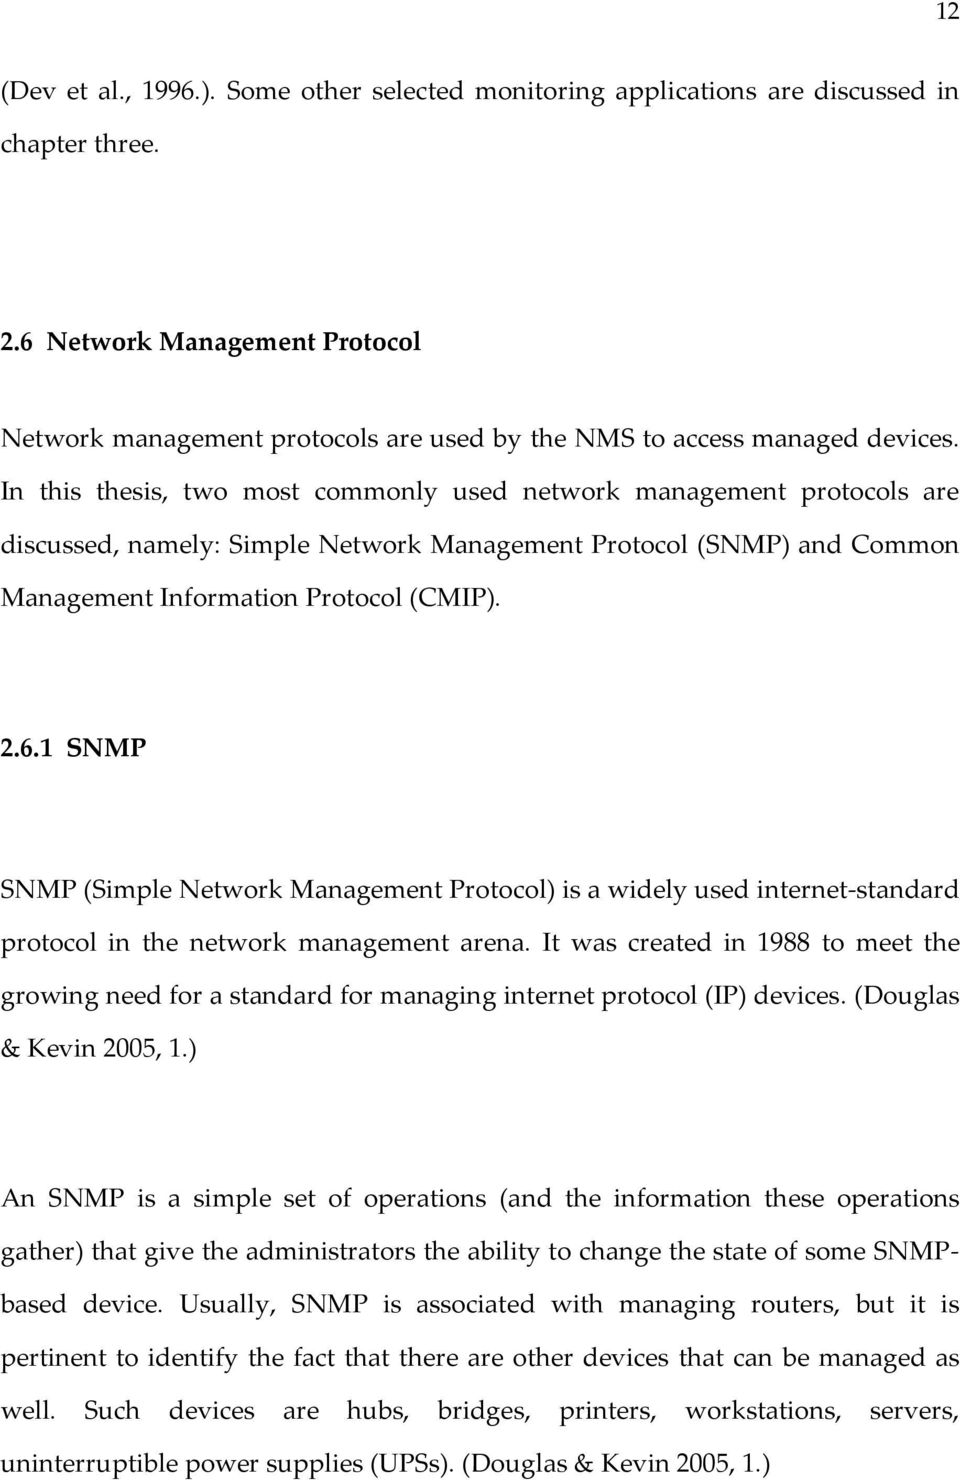 In this thesis, two most commonly used network management protocols are discussed, namely: Simple Network Management Protocol (SNMP) and Common Management Information Protocol (CMIP). 2.6.